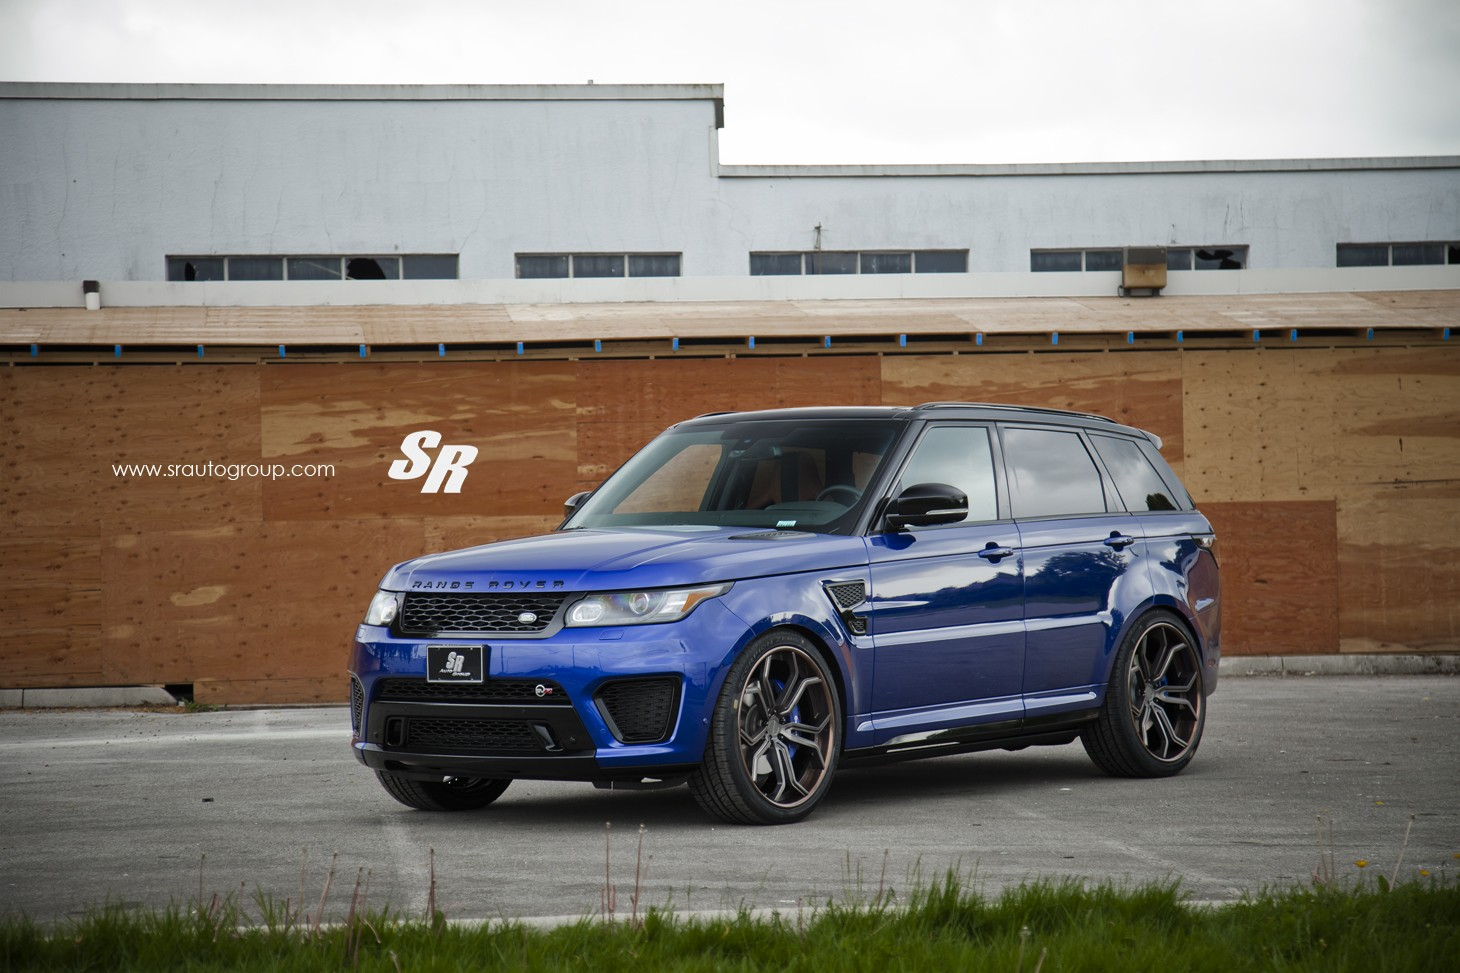 Range Rover Sport Svr On Pur Wheels British Swag 95922on 2015 Range Rover Sport White